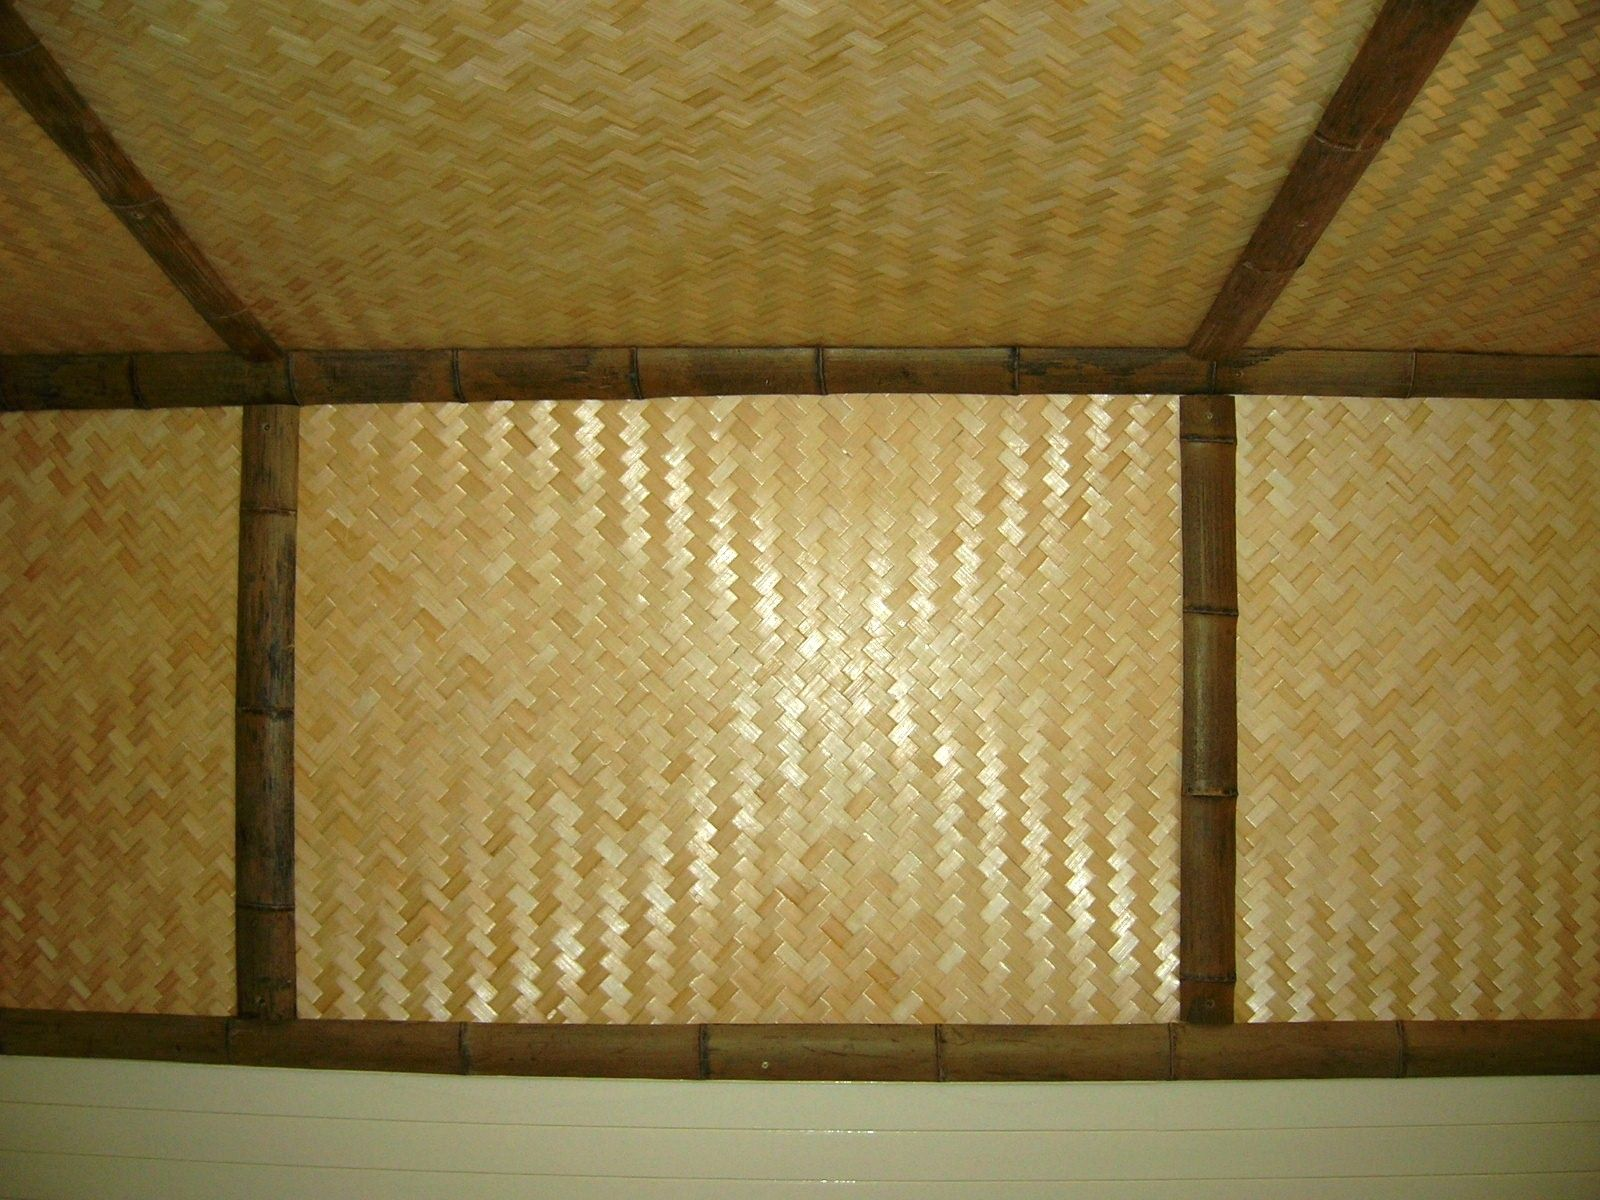 bamboo matting ceiling - Google Search | bamboo | Pinterest ...